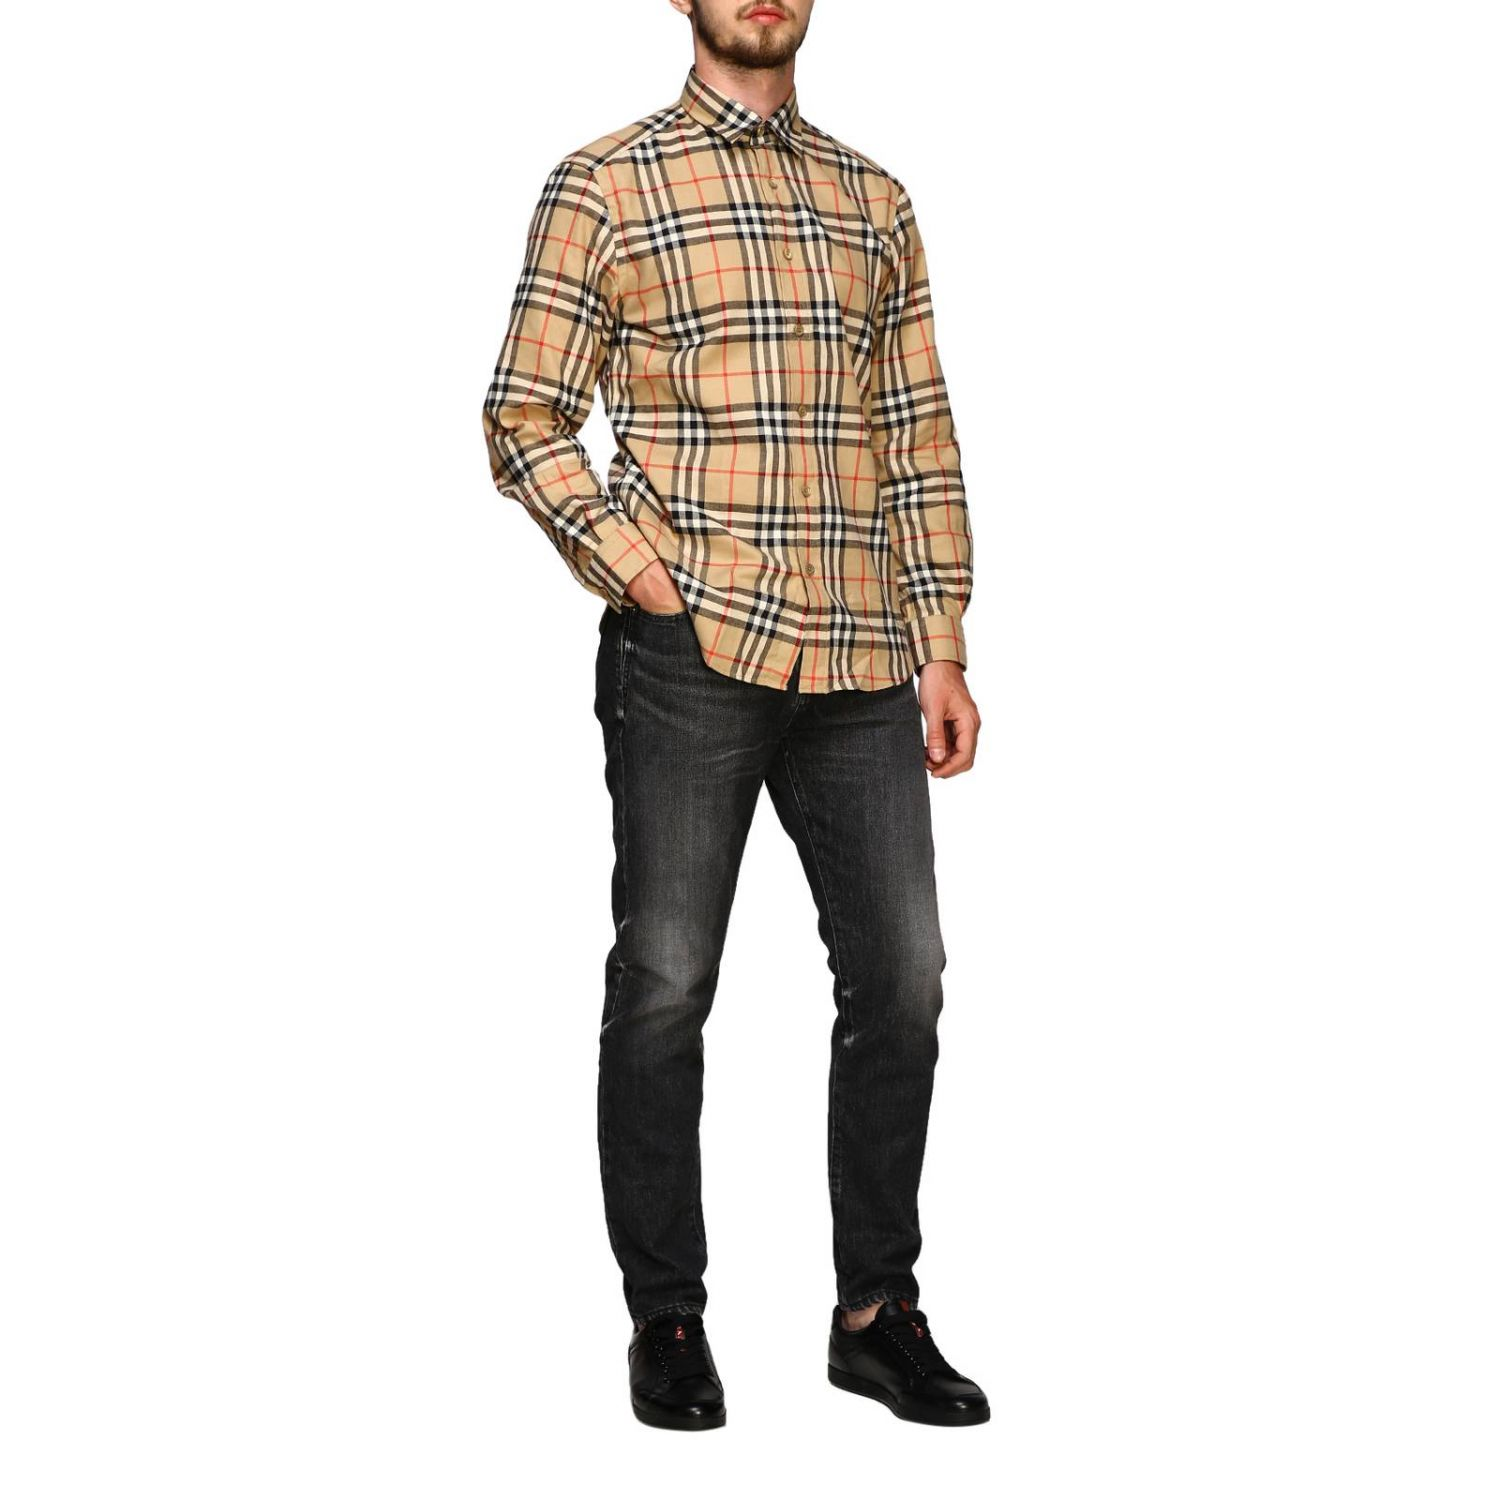 Chemise chambers Burberry motif check beige 2